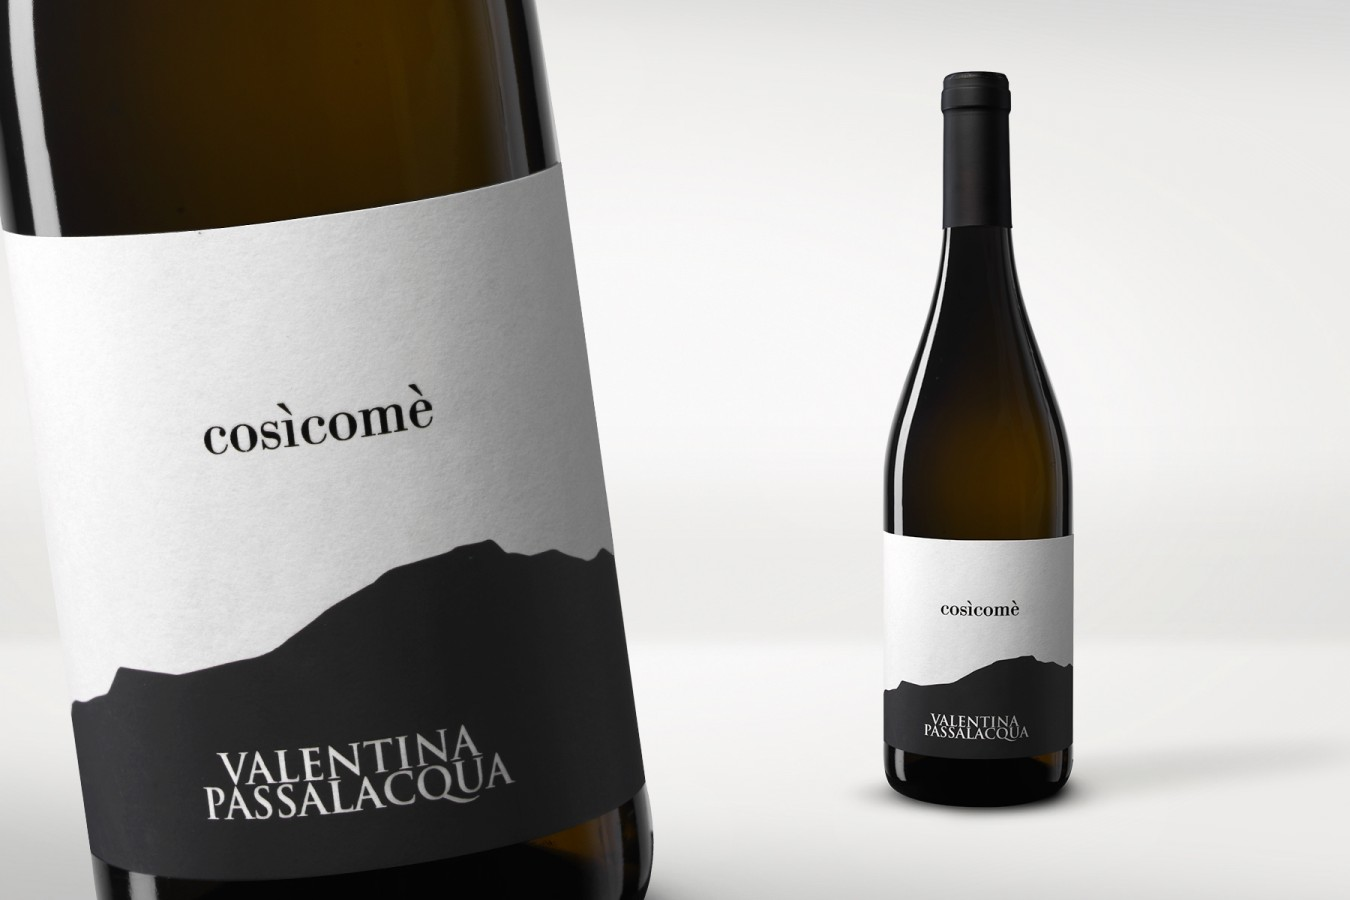 VALENTINA_PASSALACQUA_VINITALY_INTERNATIONAL_PACKAGING_2015_SPAZIODIPAOLO_COSICOME-1